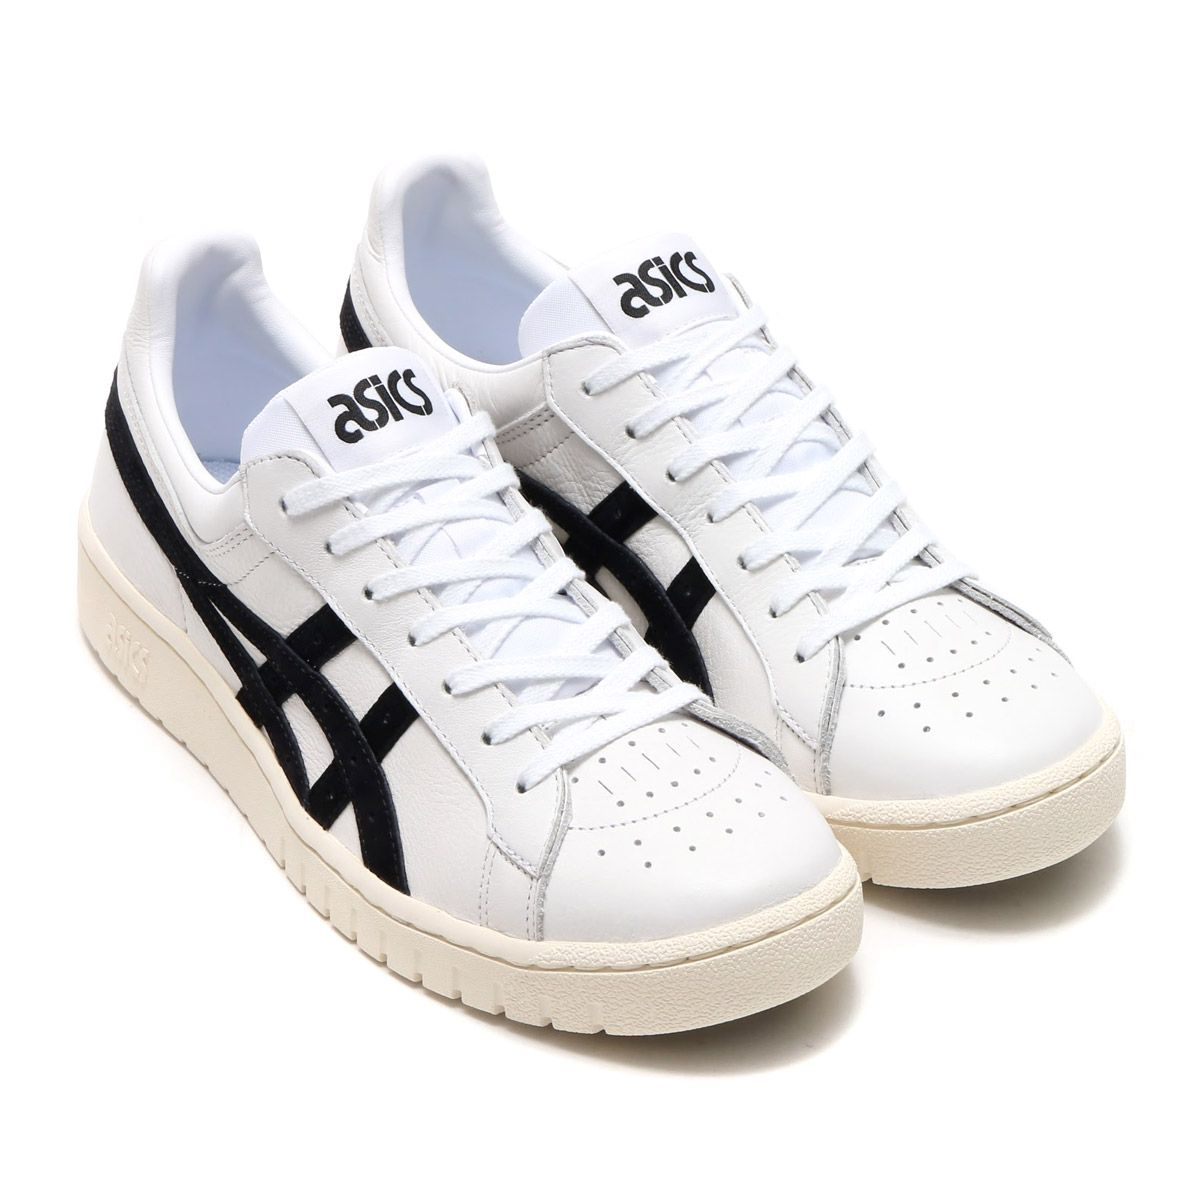 5cb18586790 asics Tiger GEL-PTG WHITE BLACK